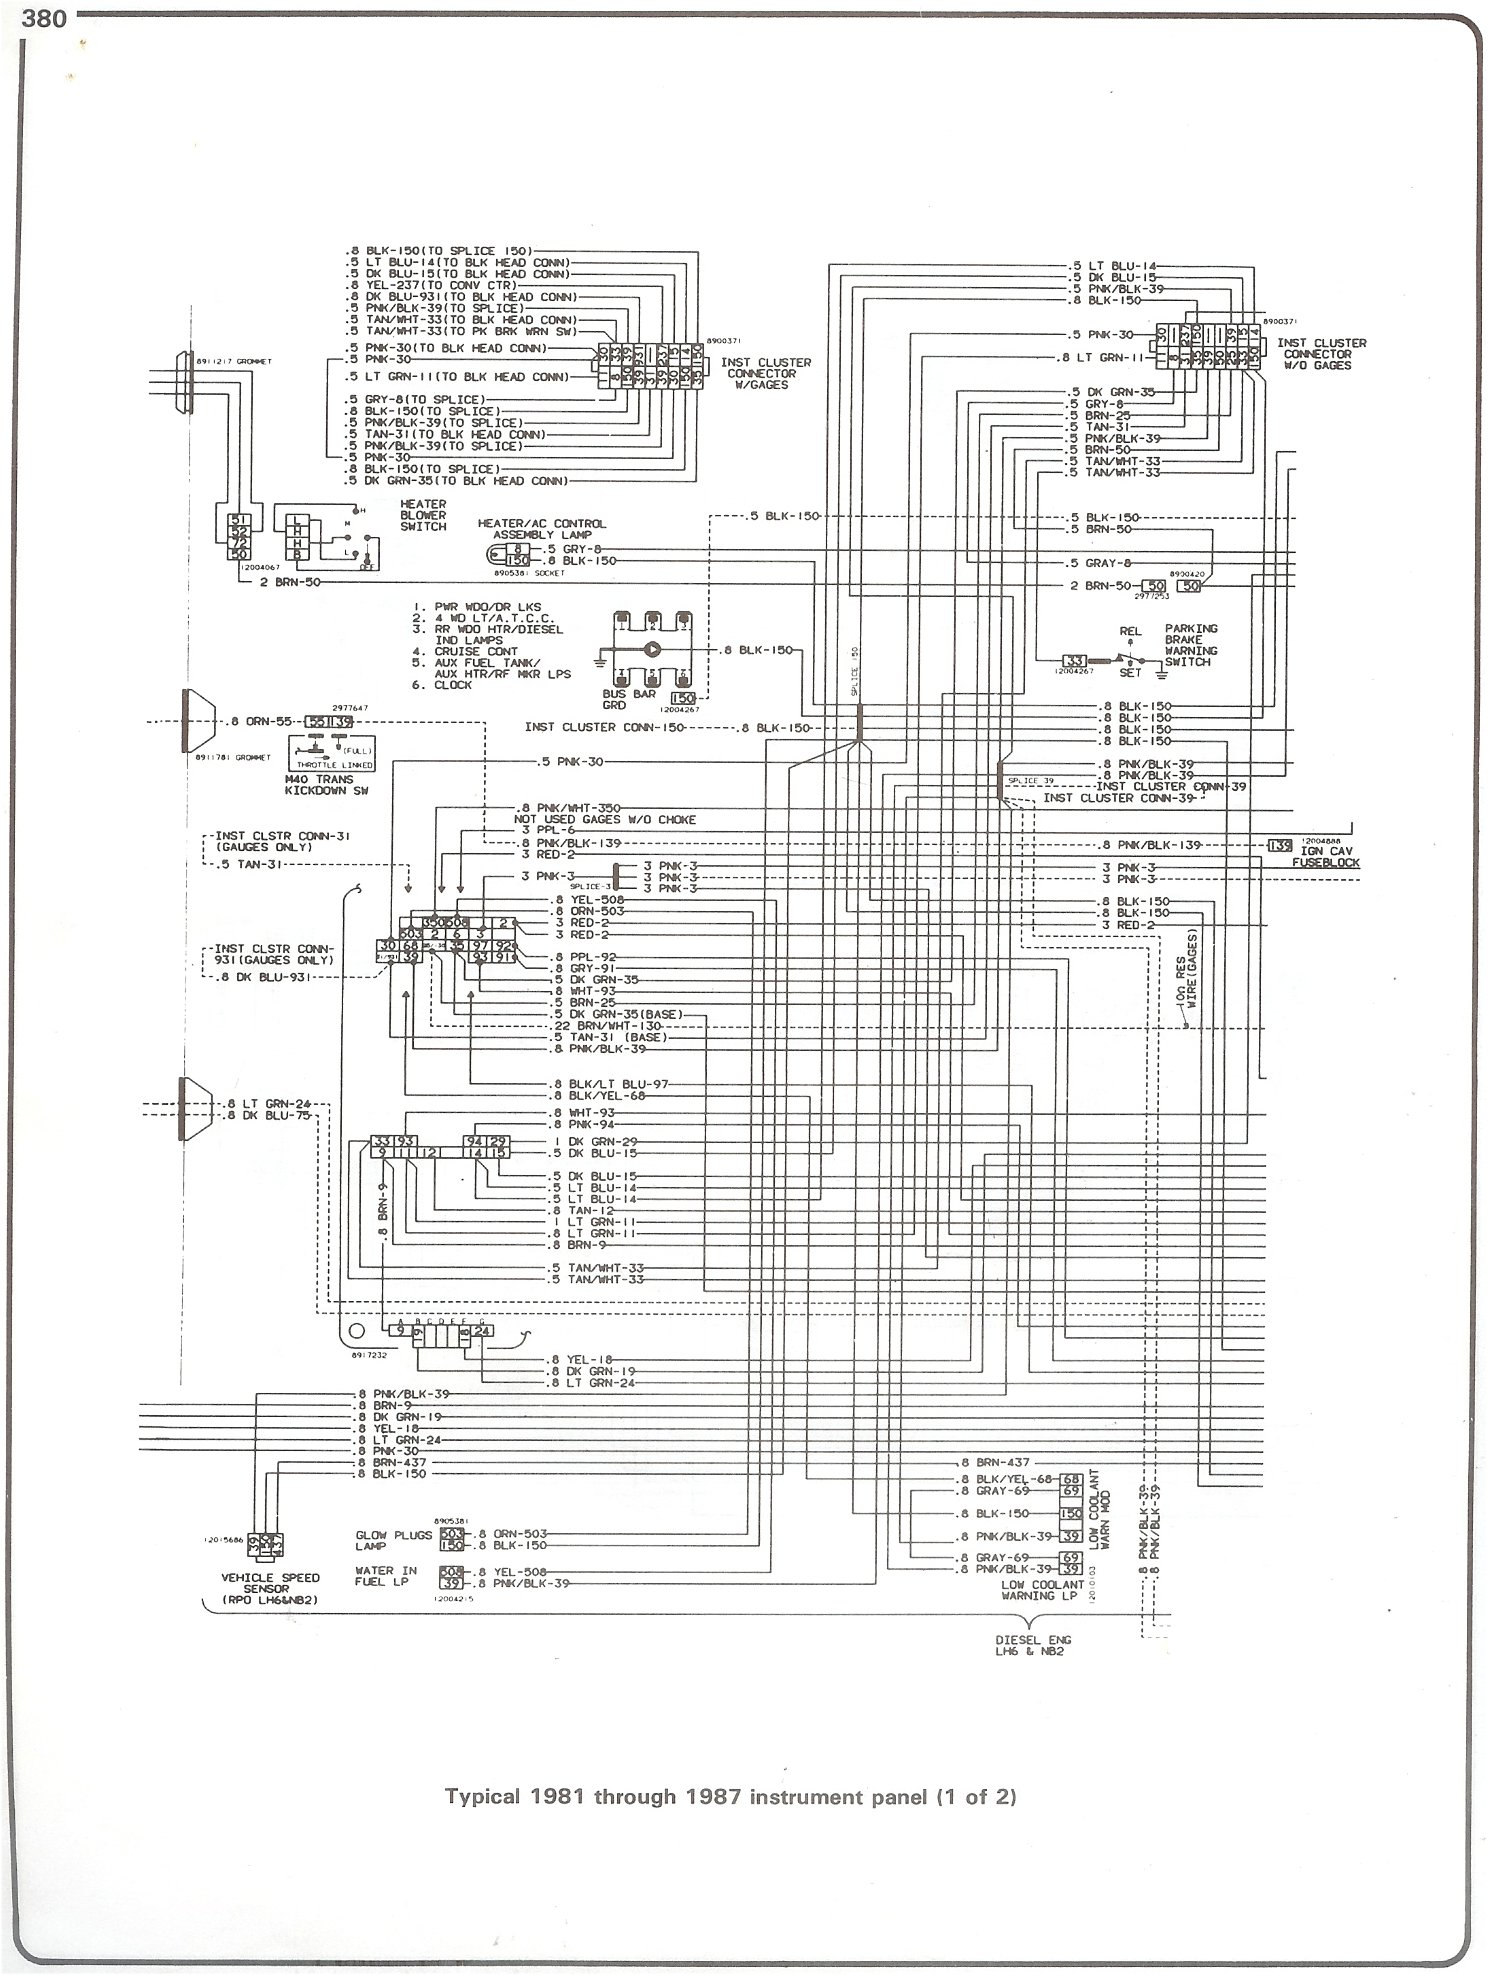 Diagram 1972 Chevy C10 Dash Cluster Wiring Diagram Full Version Hd Quality Wiring Diagram Skematik110isi Gsdportotorres It